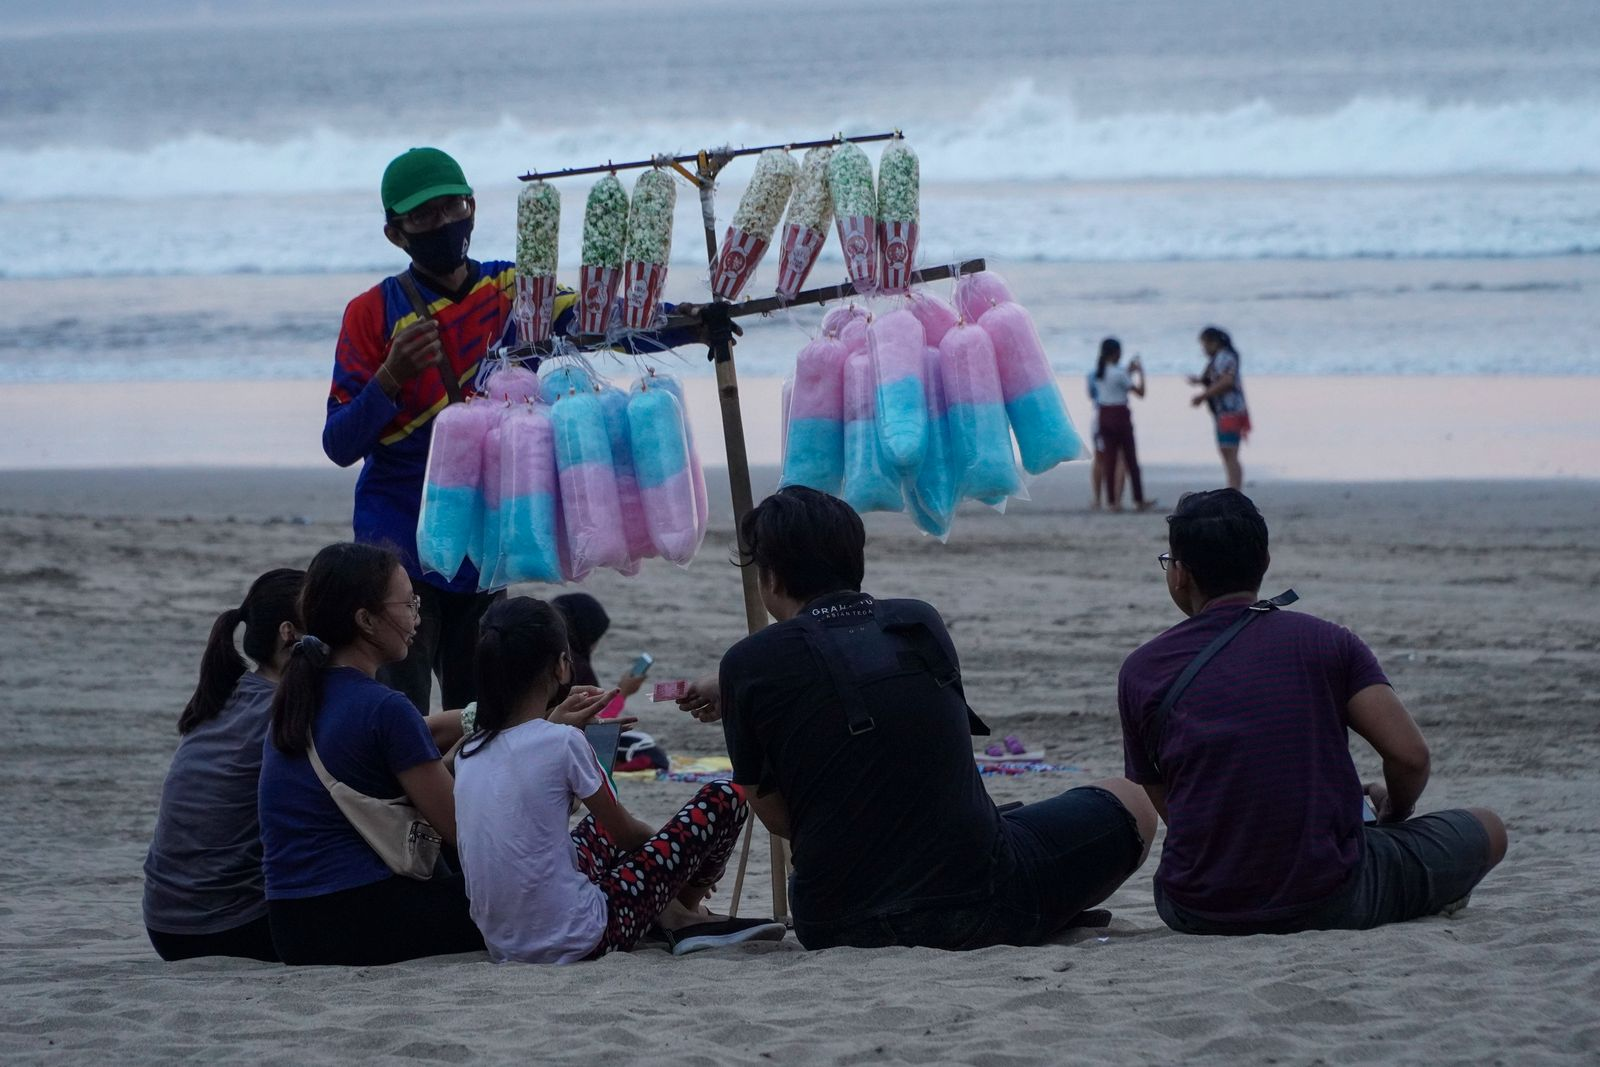 August 10, 2020, Badung, Bali, Indonesia: A street vendor man peddle his product among the tourists. People enjoy their